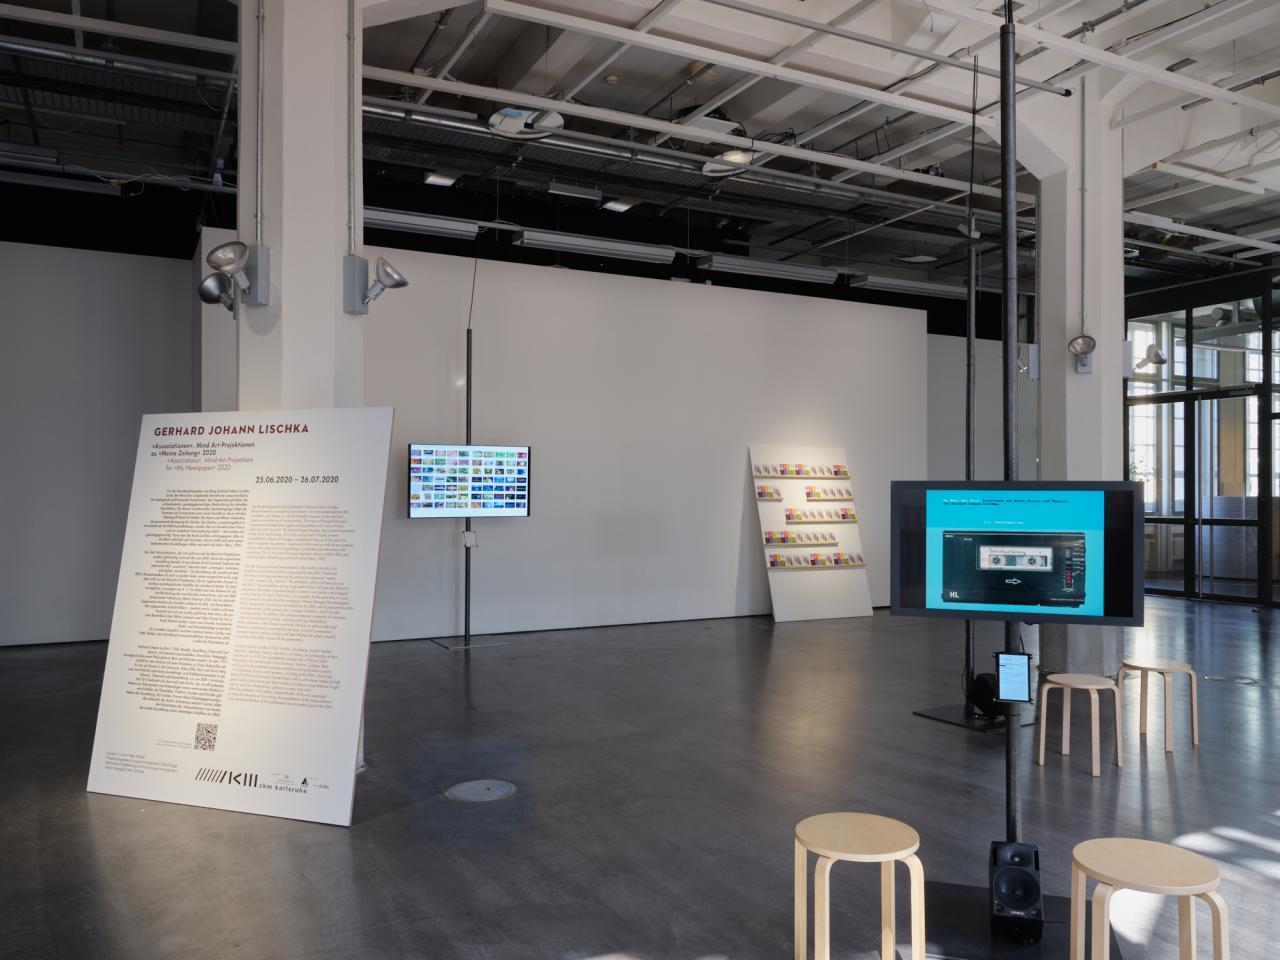 View into the exhibition. A large writing board and two screens standing in the room can be seen. Four chairs are distributed throughout the room.